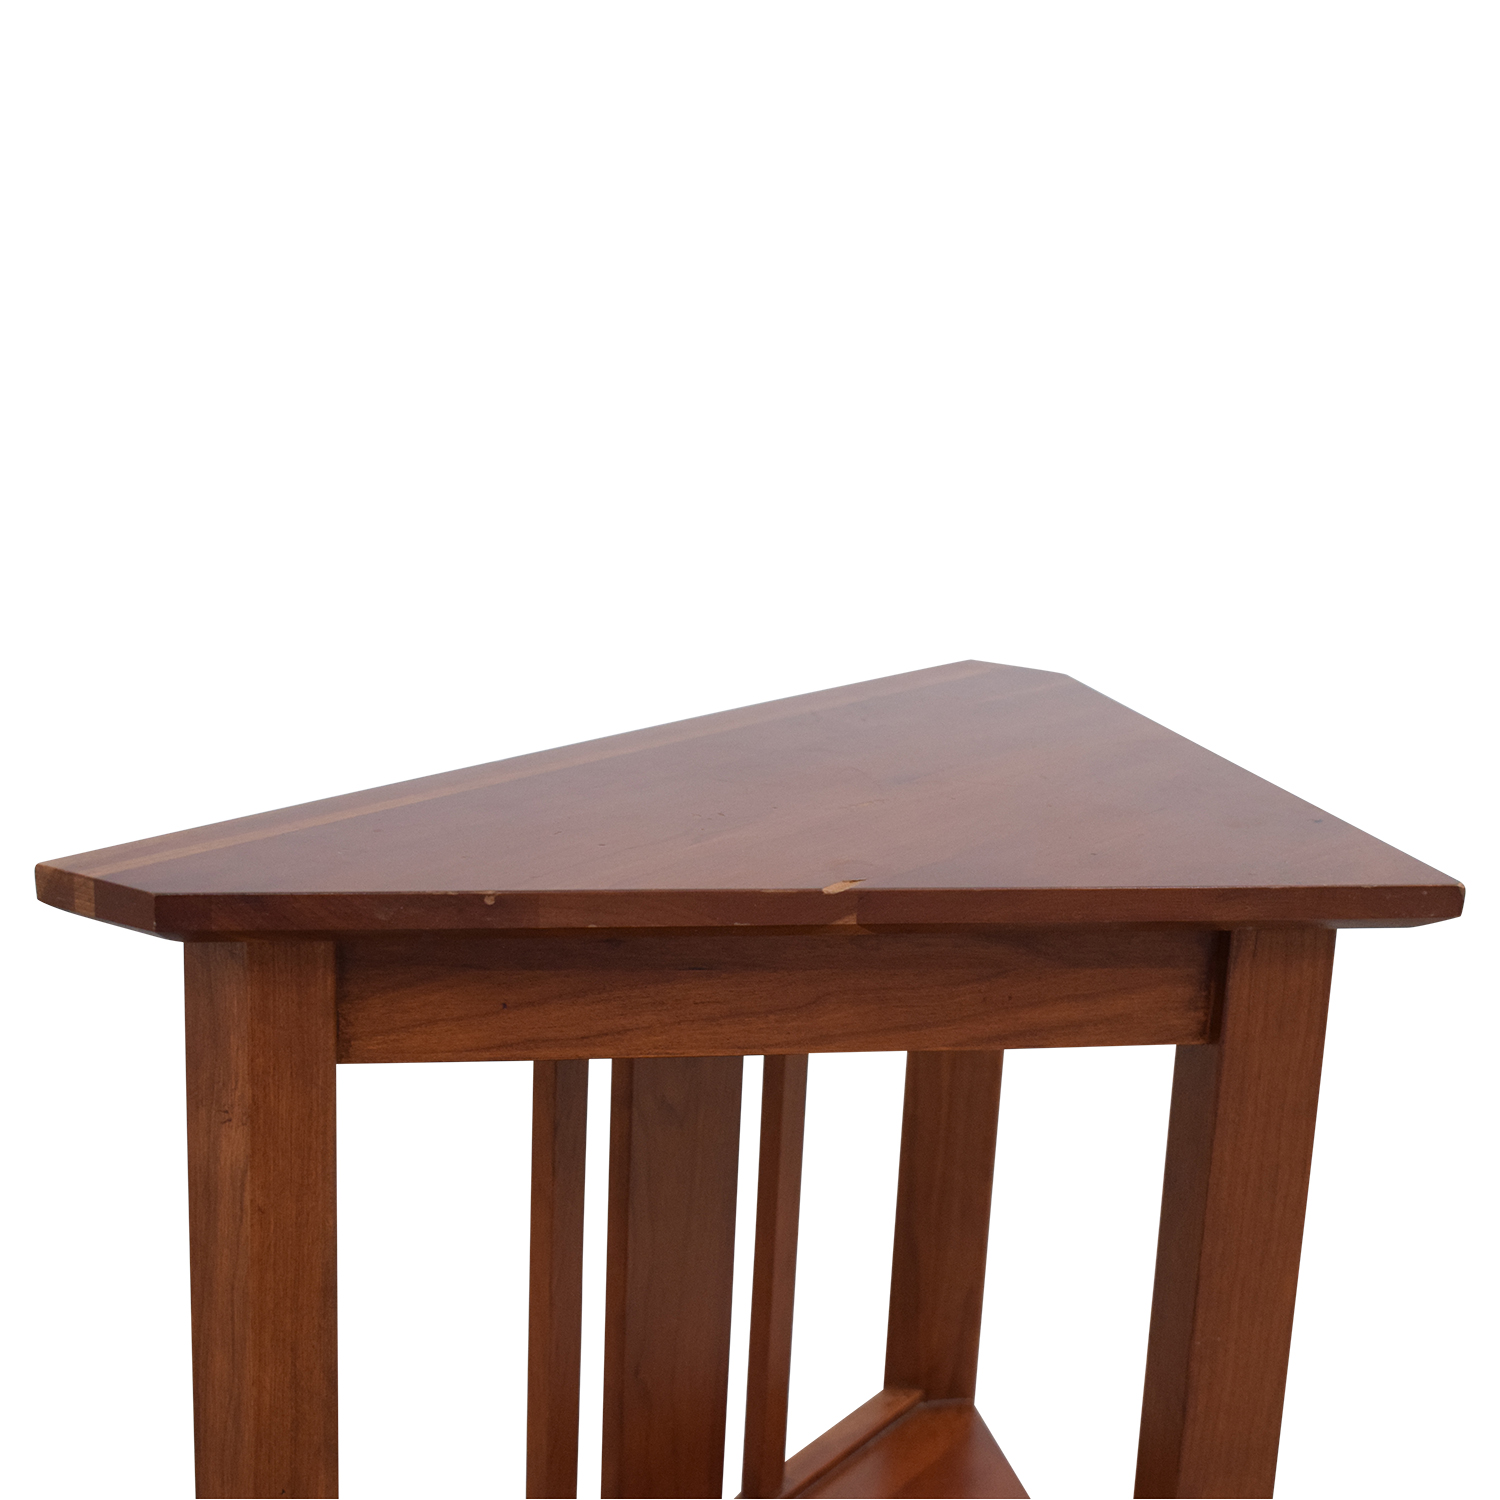 Ethan Allen Ethan Allen End Table second hand